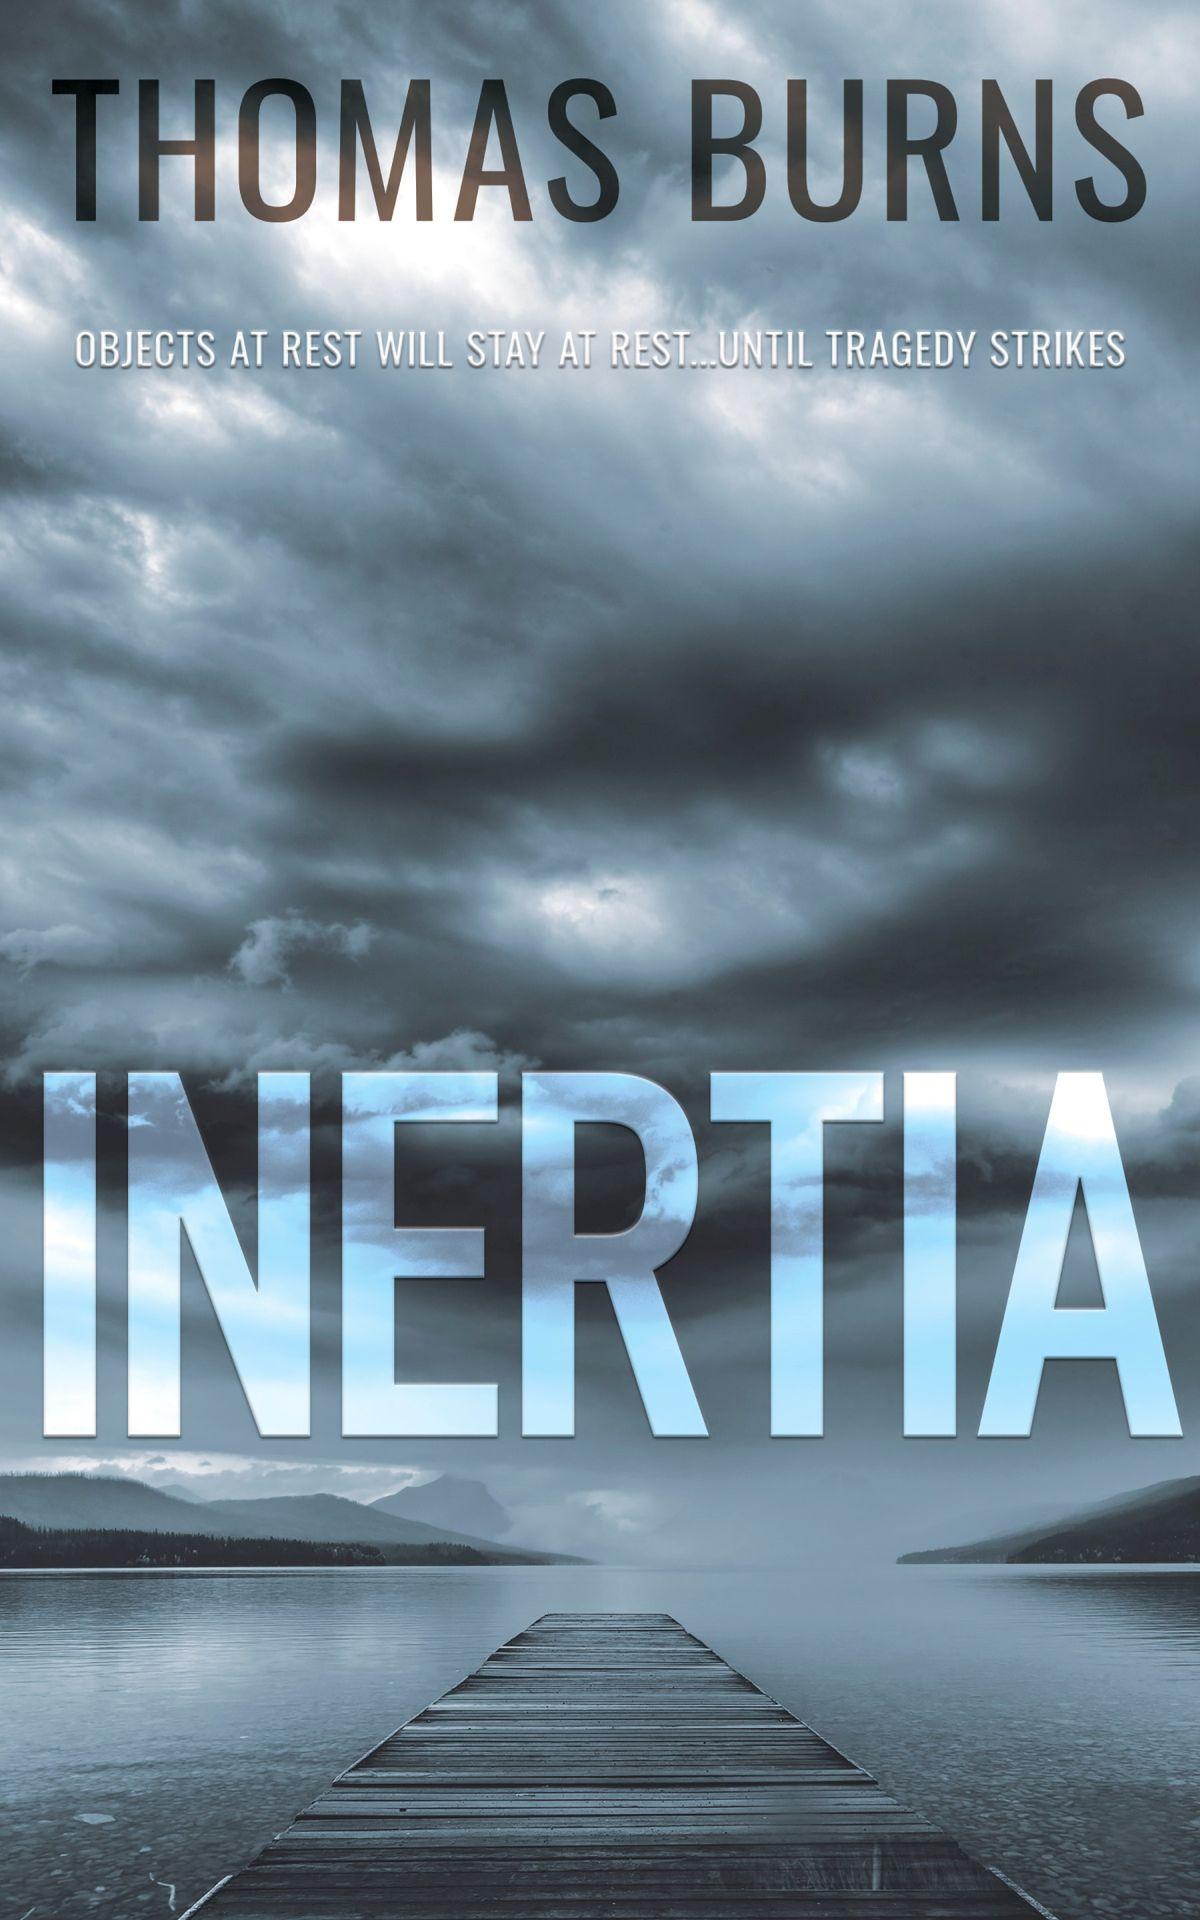 Inertia_Thomas Burns FINAL ebook cover.jpg